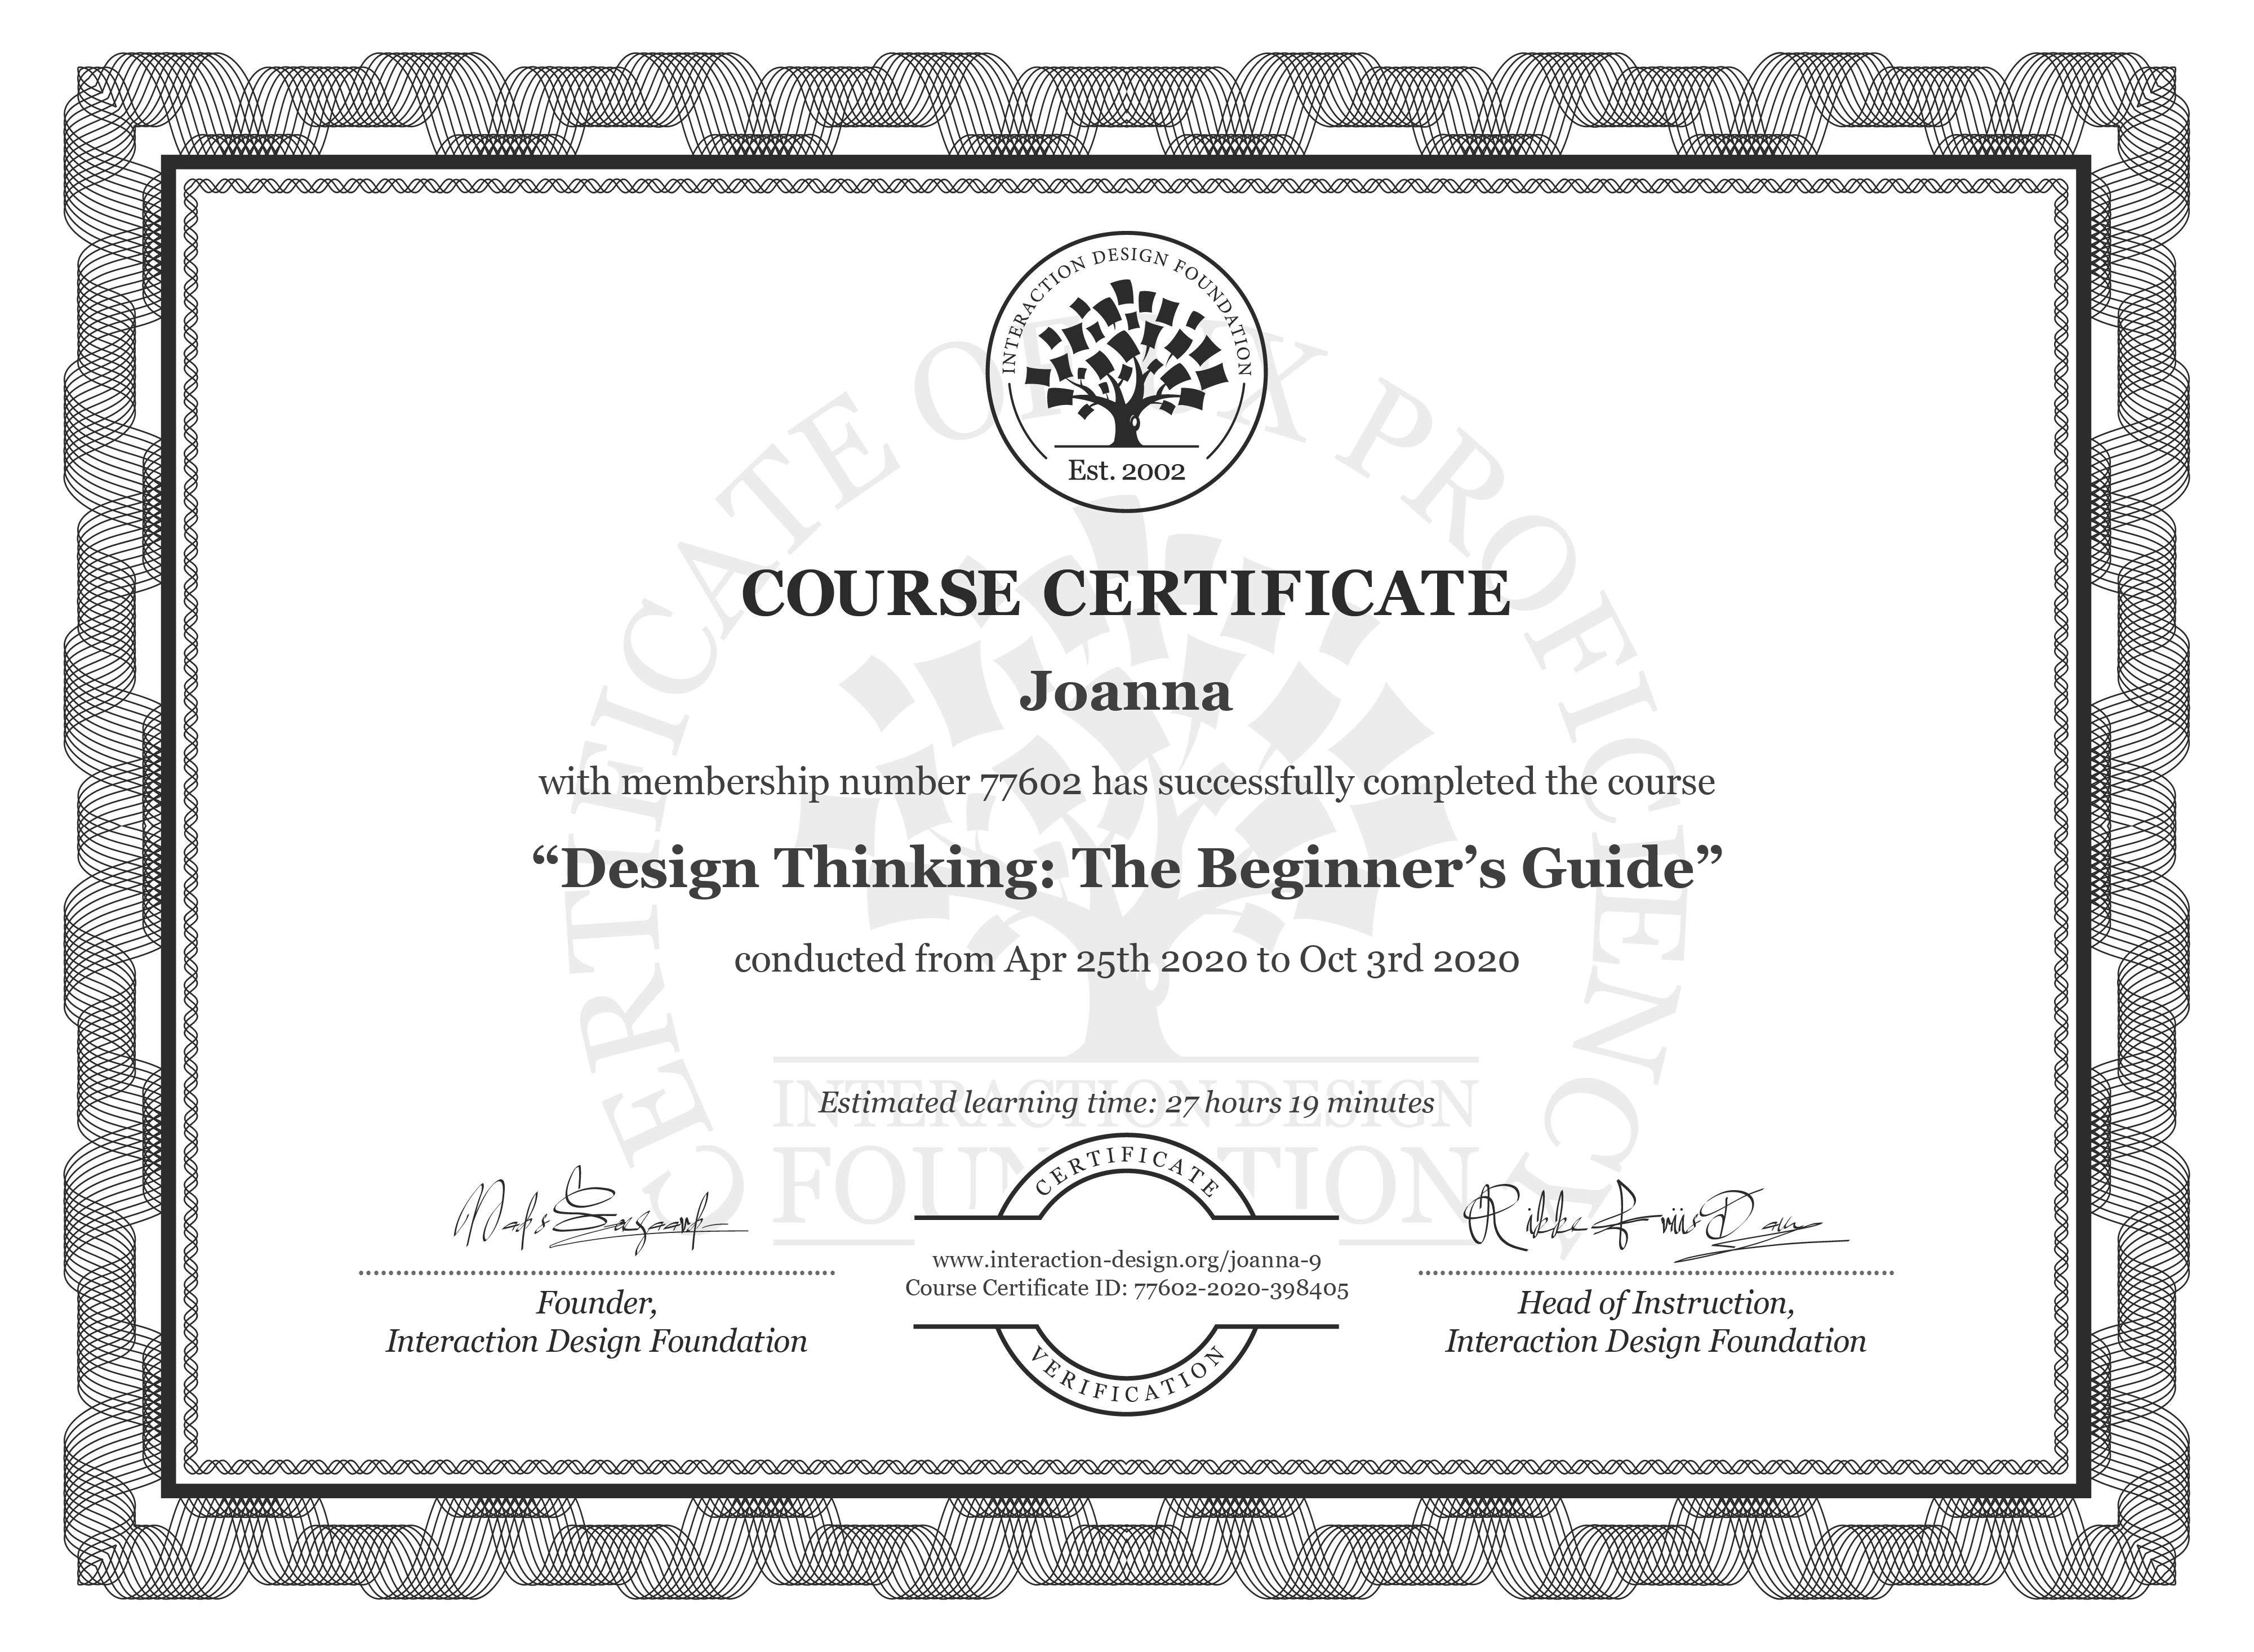 Joanna's Course Certificate: Design Thinking: The Beginner's Guide